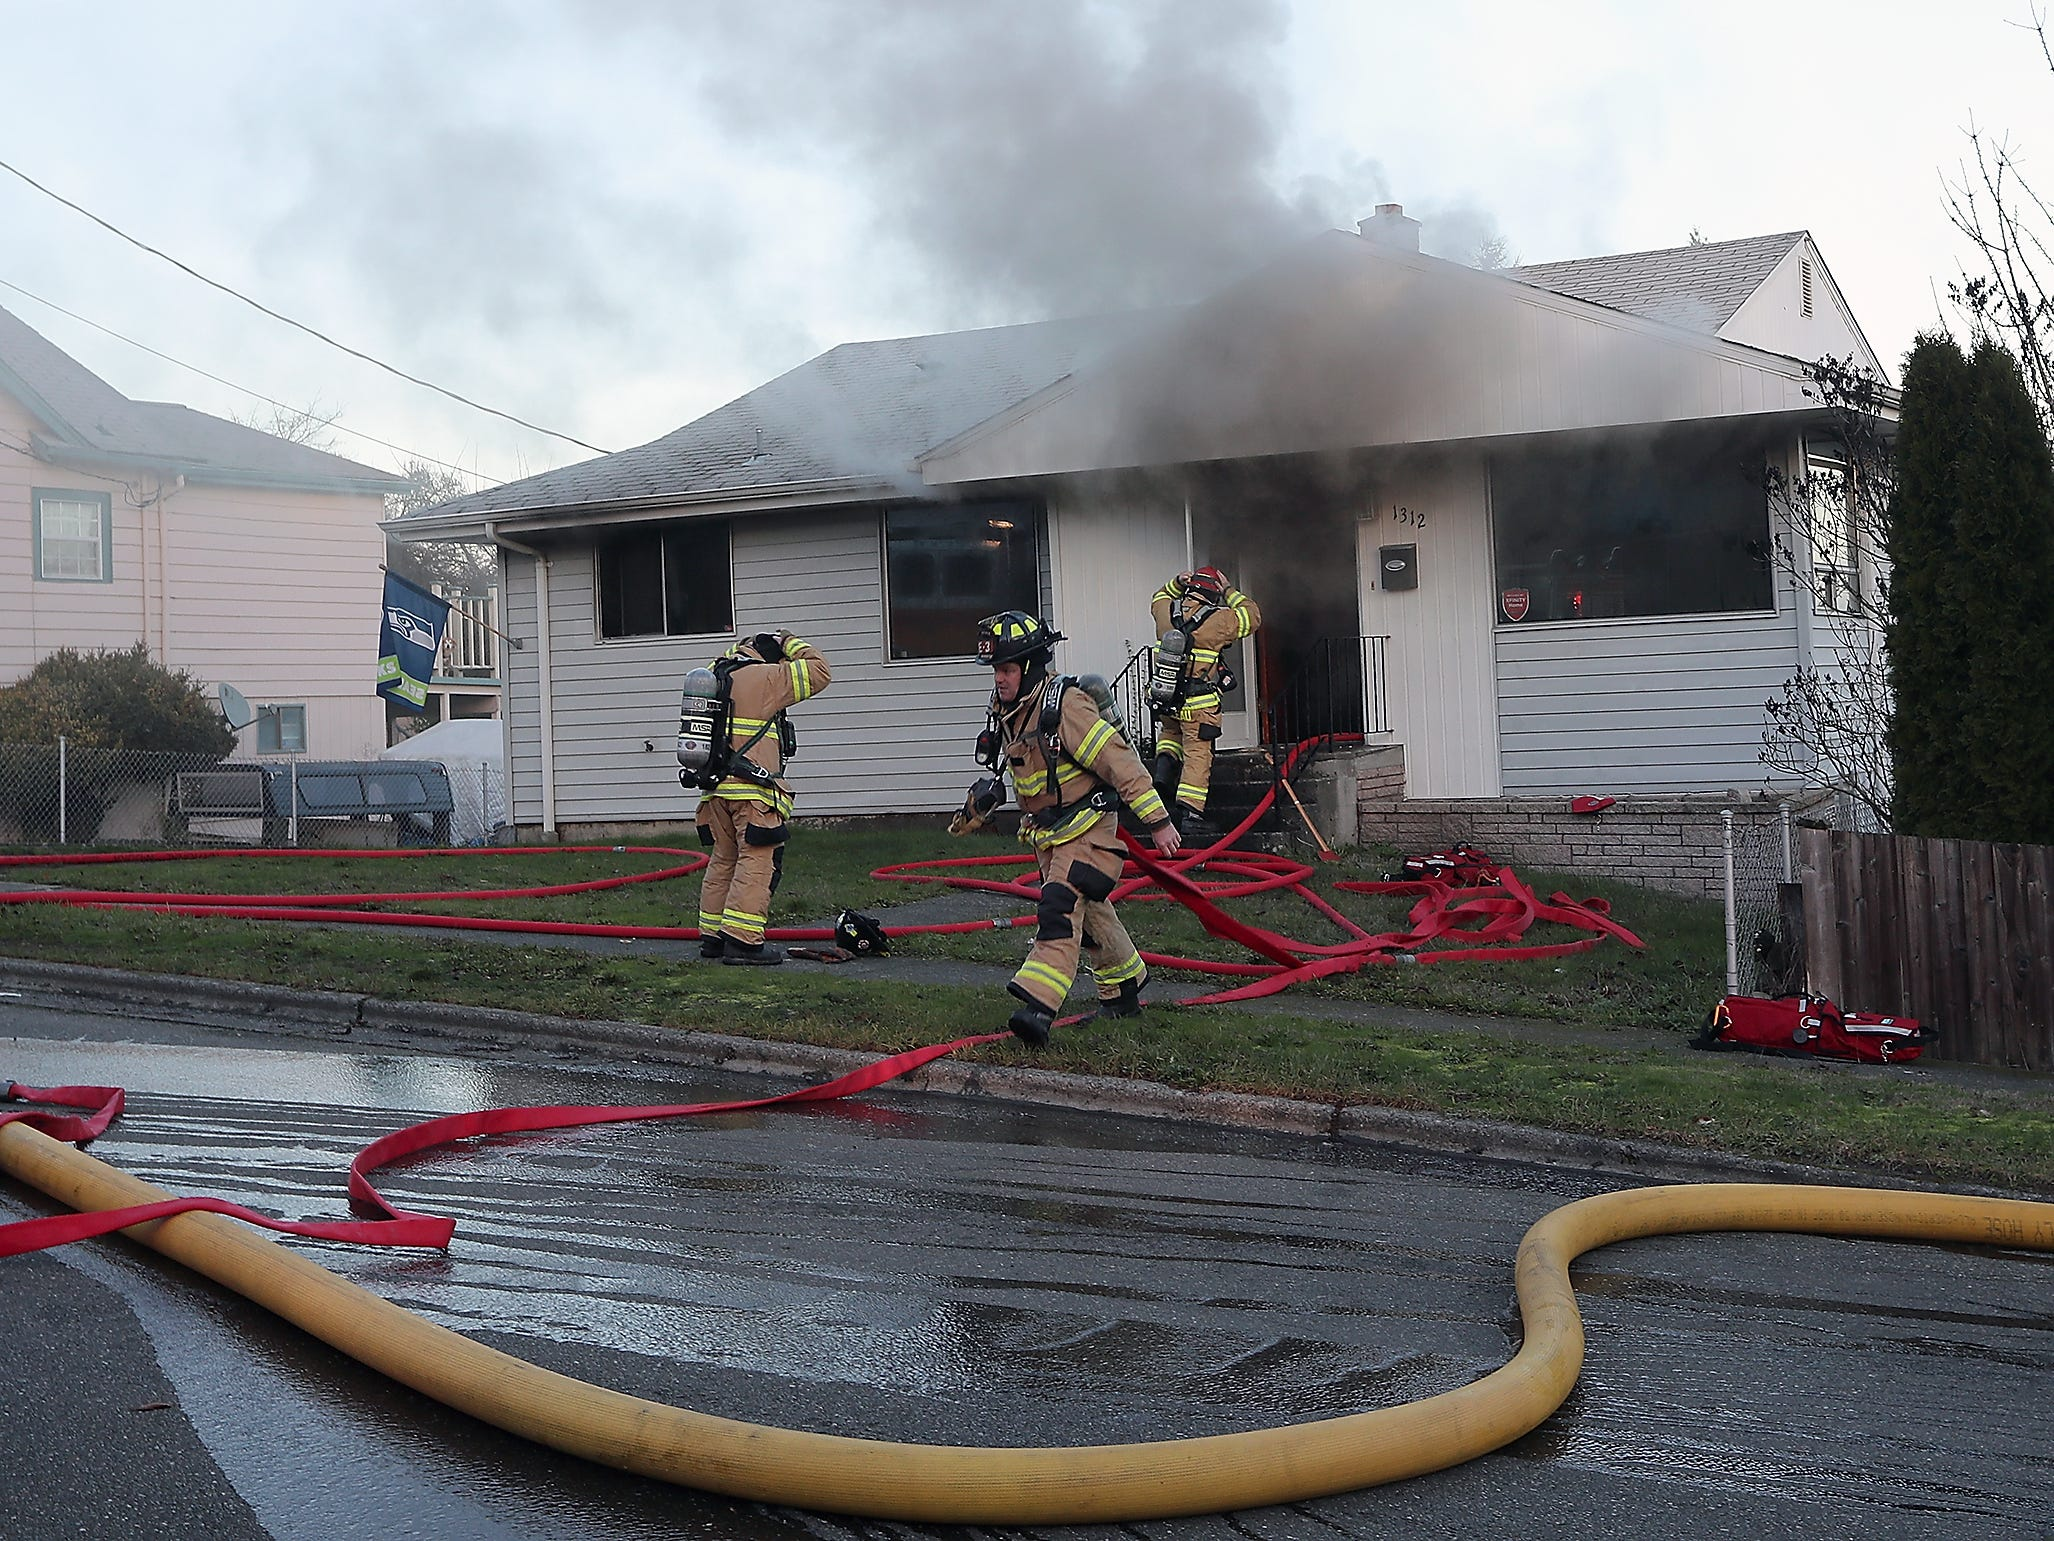 Bremerton Firefighter/Paramedic Kevin Bonsell (center) pulls hose as fellow Bremerton firefighters Capt. Brian Marceau, (right) and Doug Baier (left) don their masks before entering the home as crews extinguish a residential structure fire on Marguerite Ave. in Bremerton on Monday, January 7, 2019.